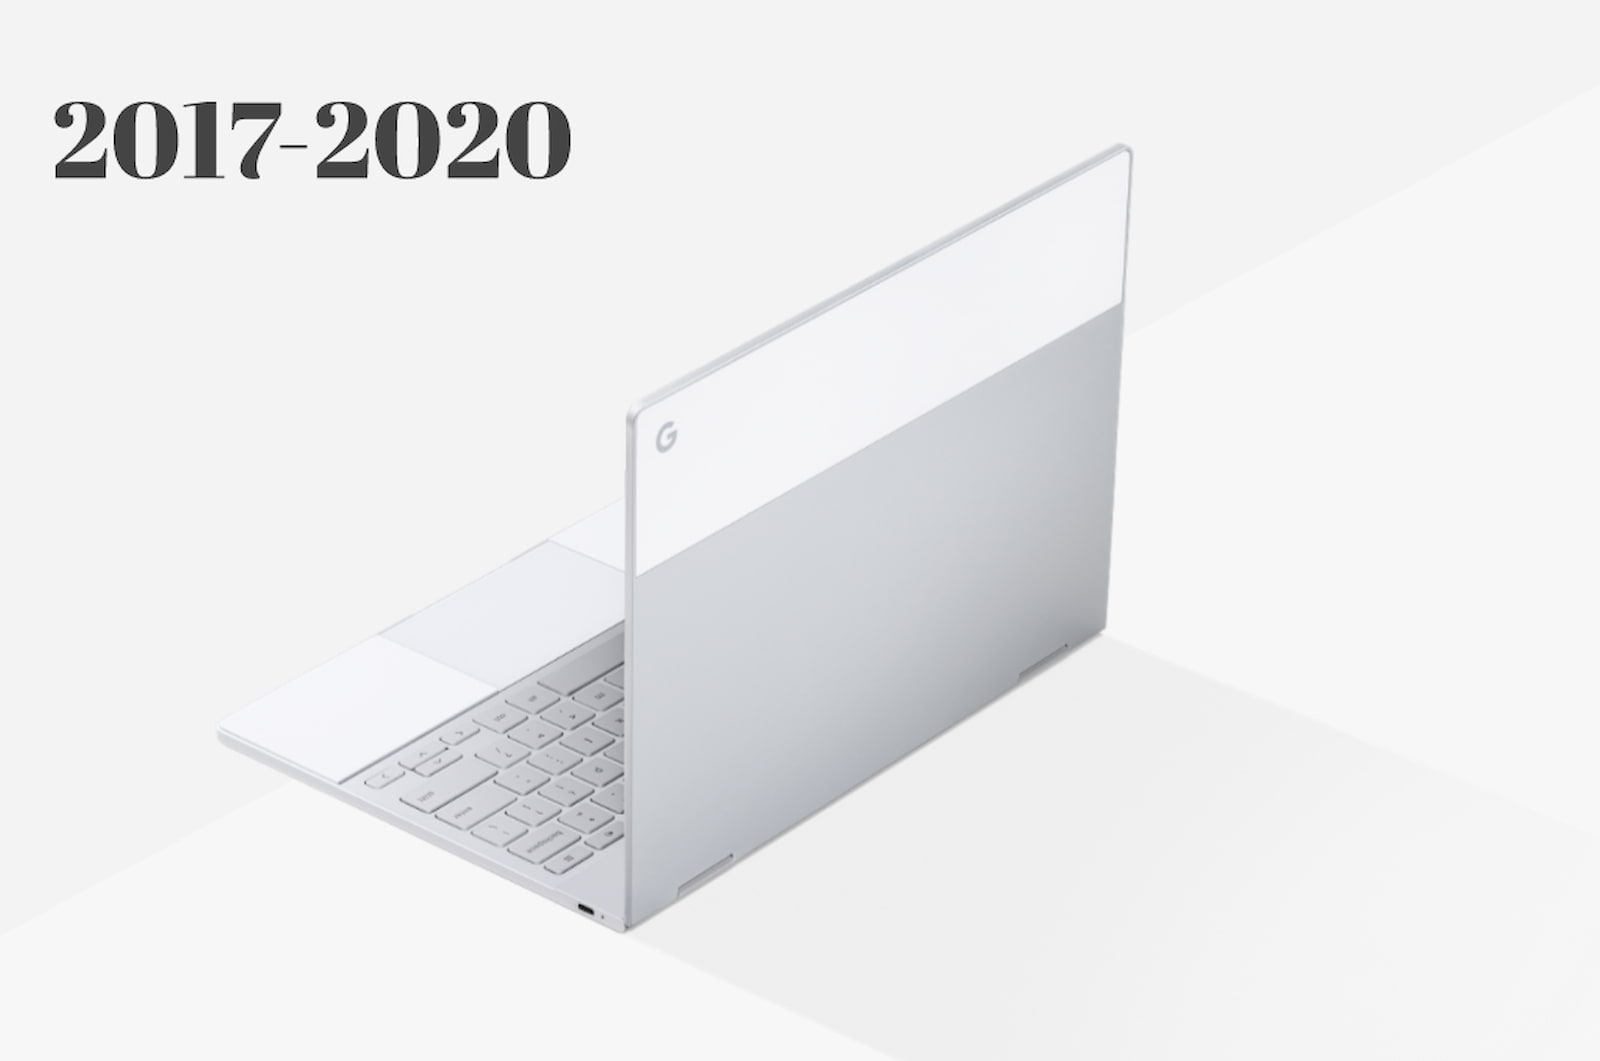 The Pixelbook is no more: New Google Chromebook this month?